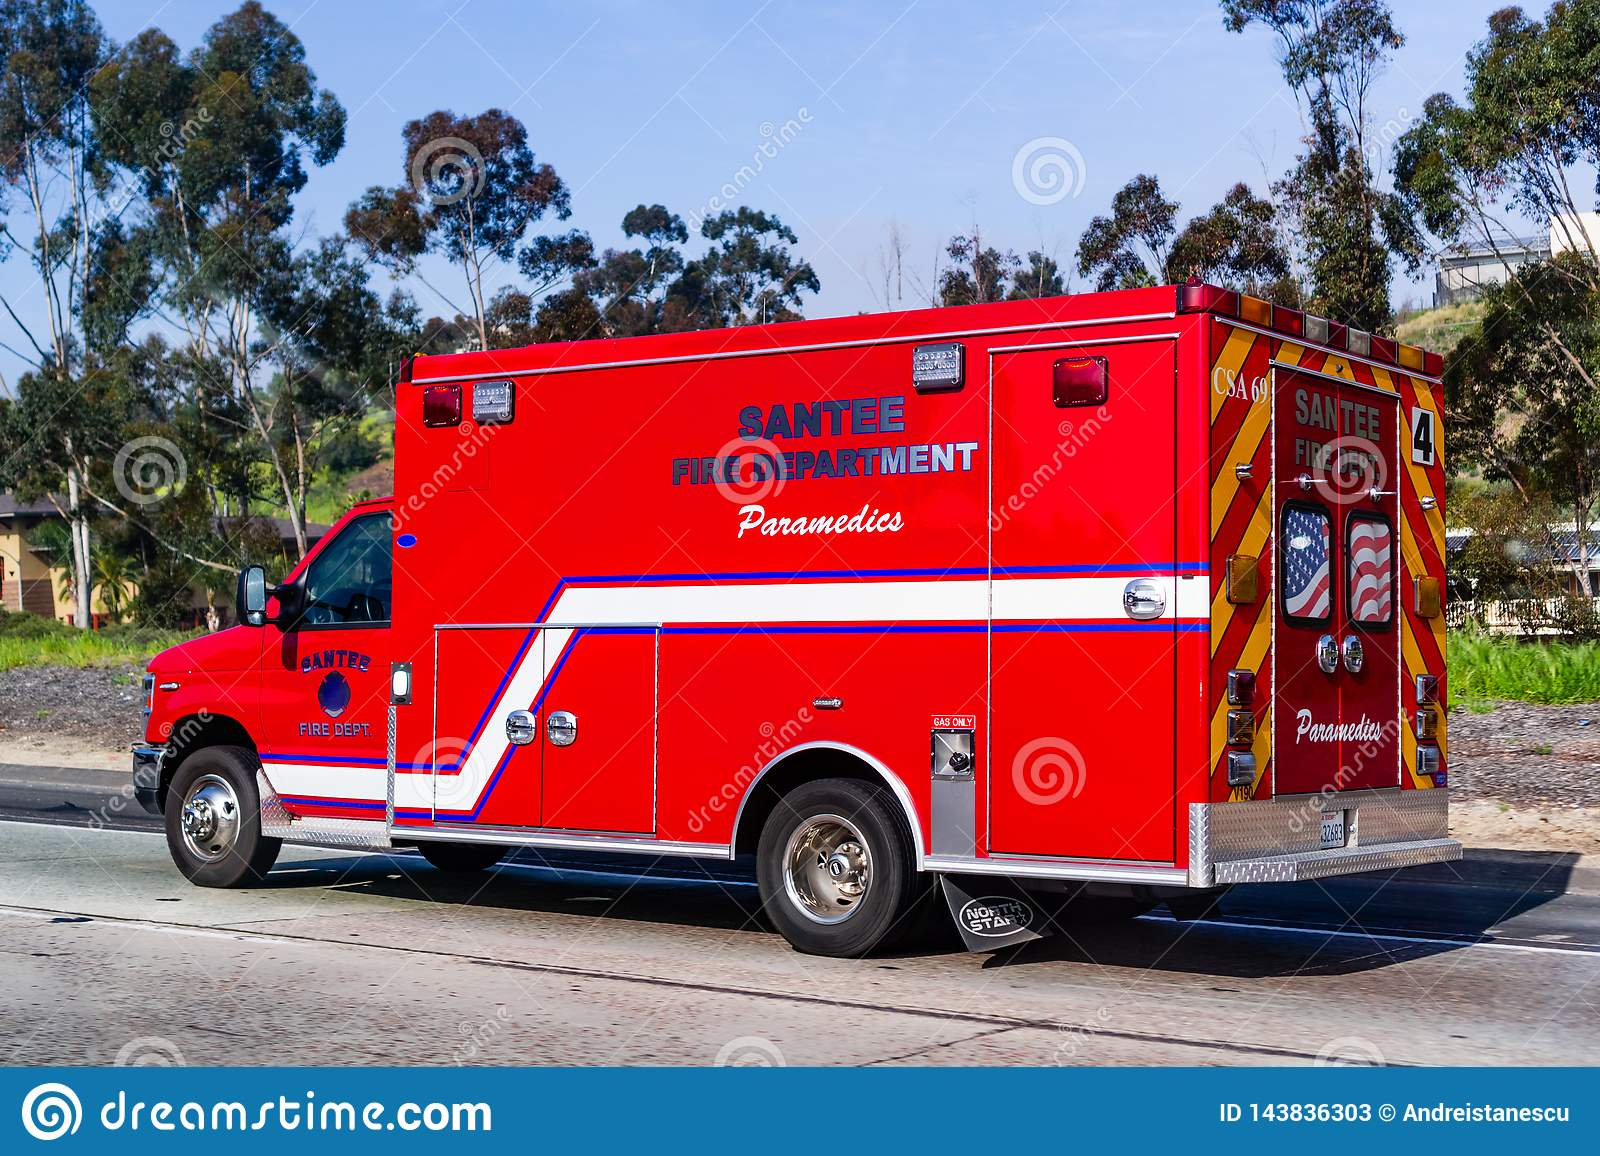 March 19, 2019 Santee / CA / USA - Fire Deparment Paramedics Vehicle driving on a street